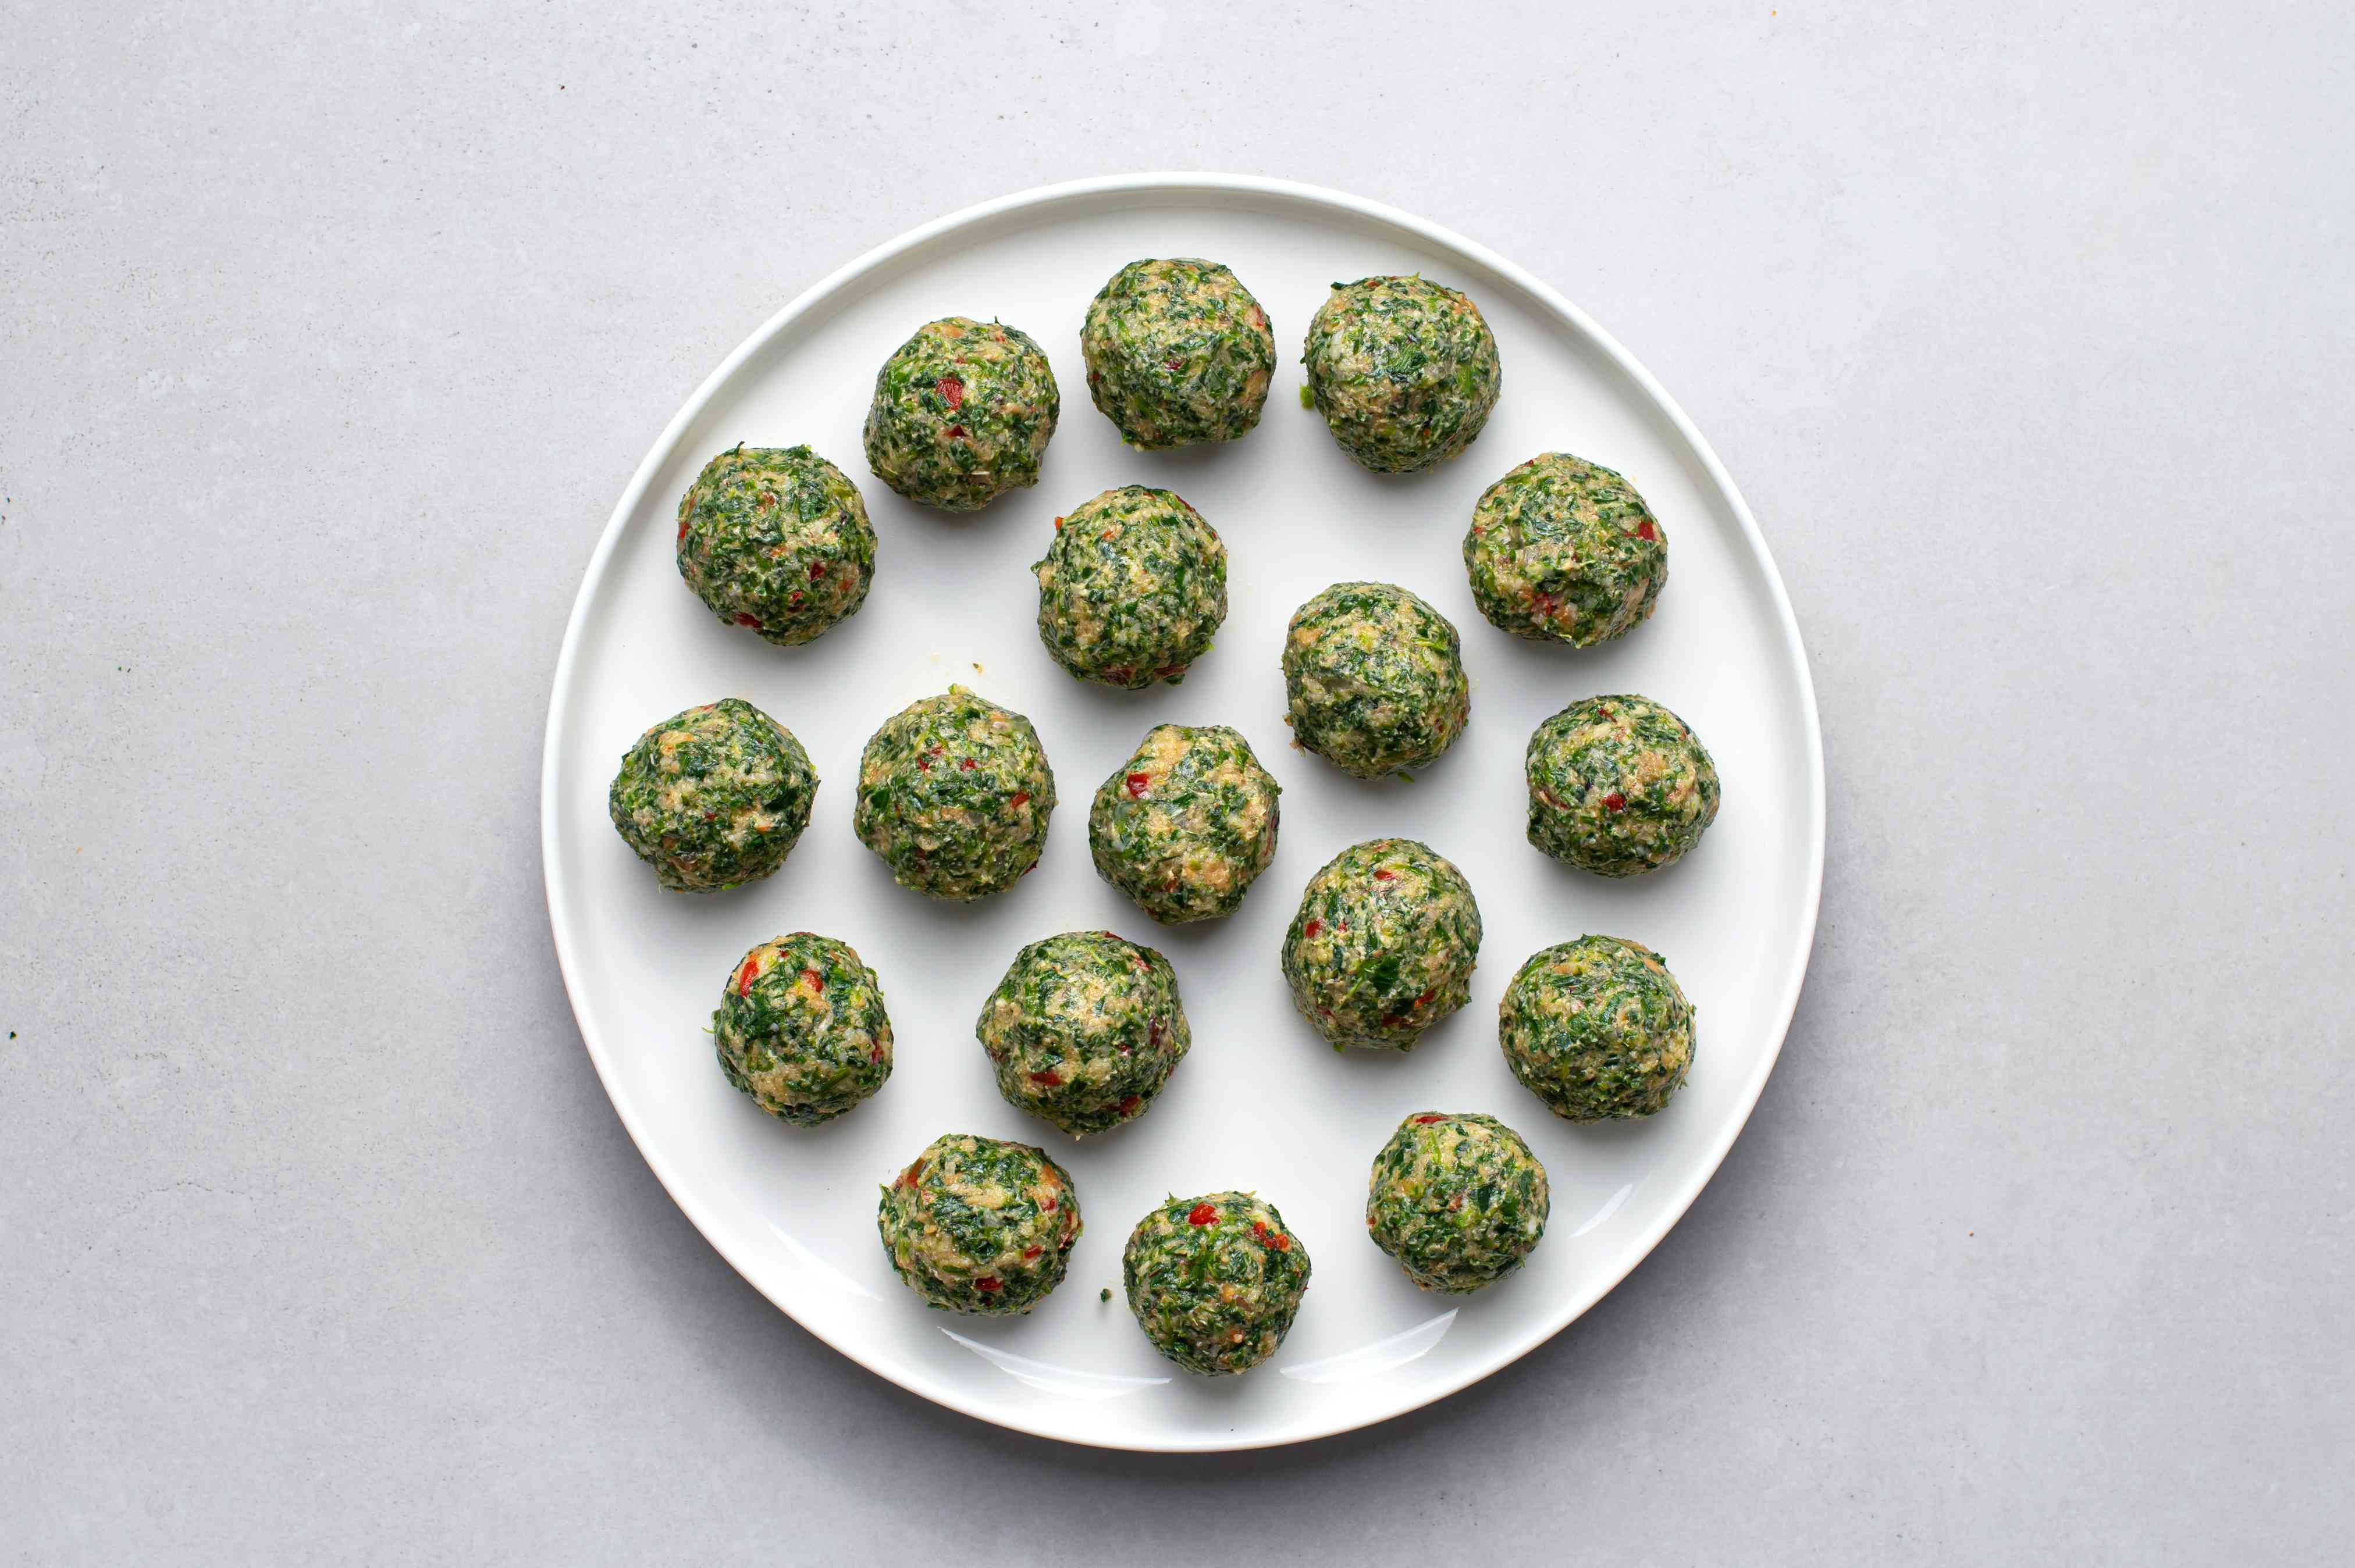 spinach balls on a plate